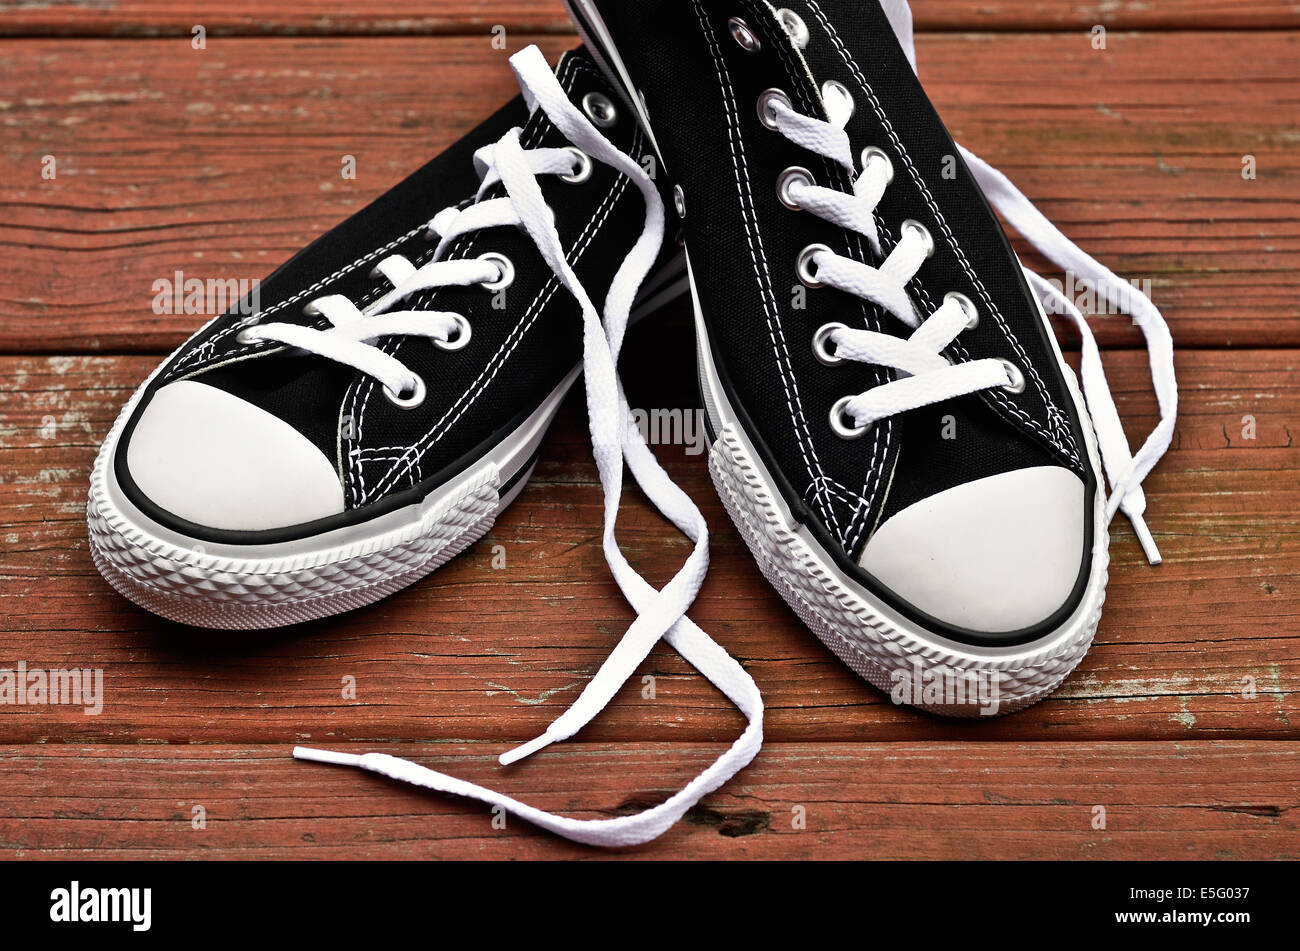 Black and white sneakers on wooden floor - Stock Image